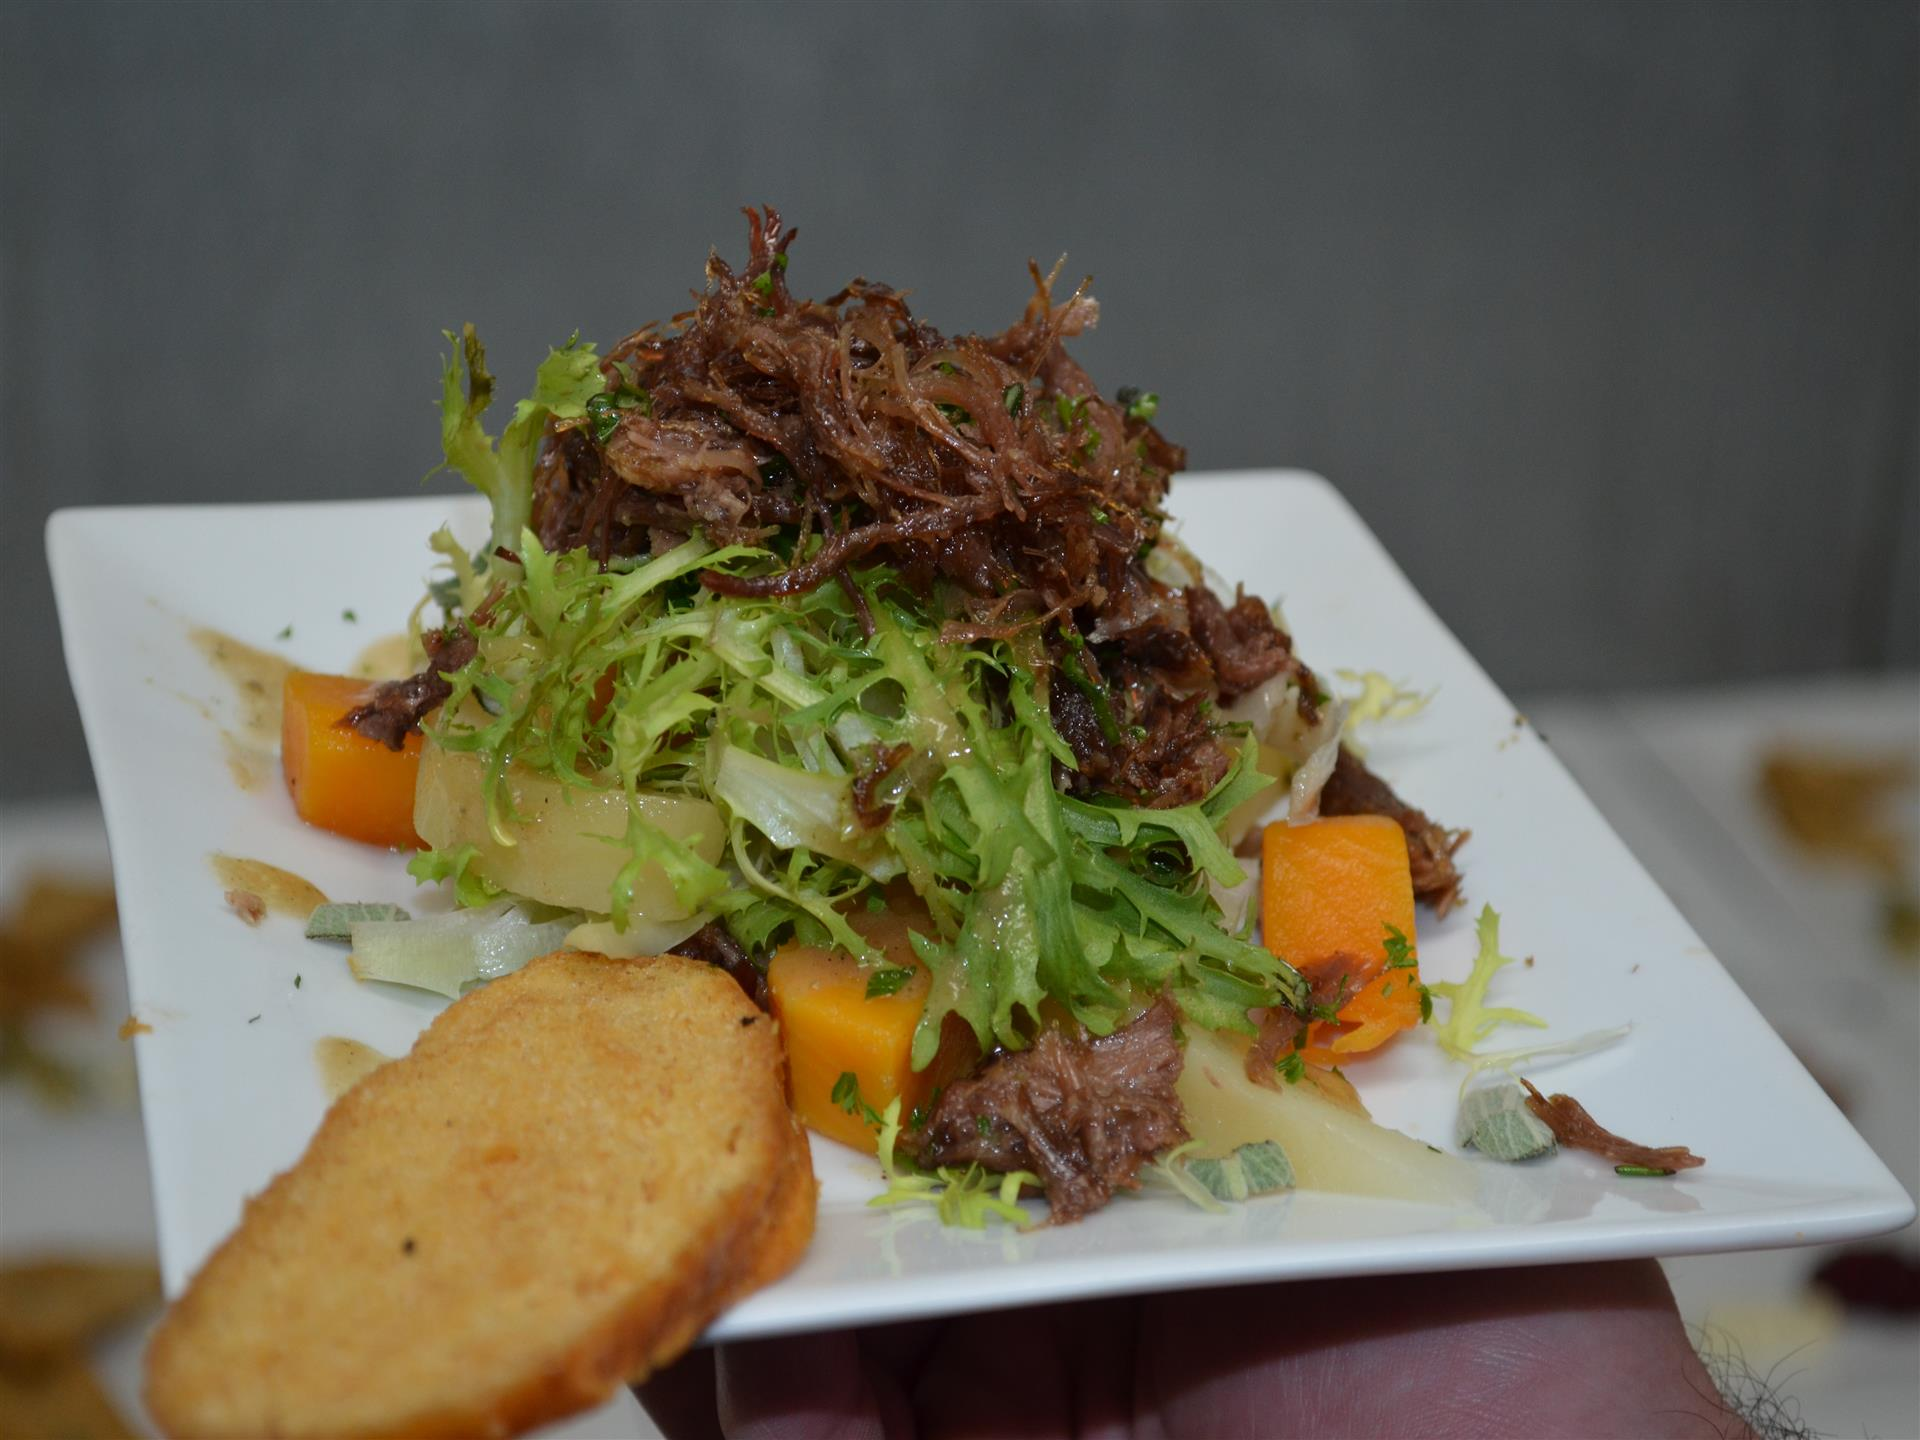 Shredded beef served over greens